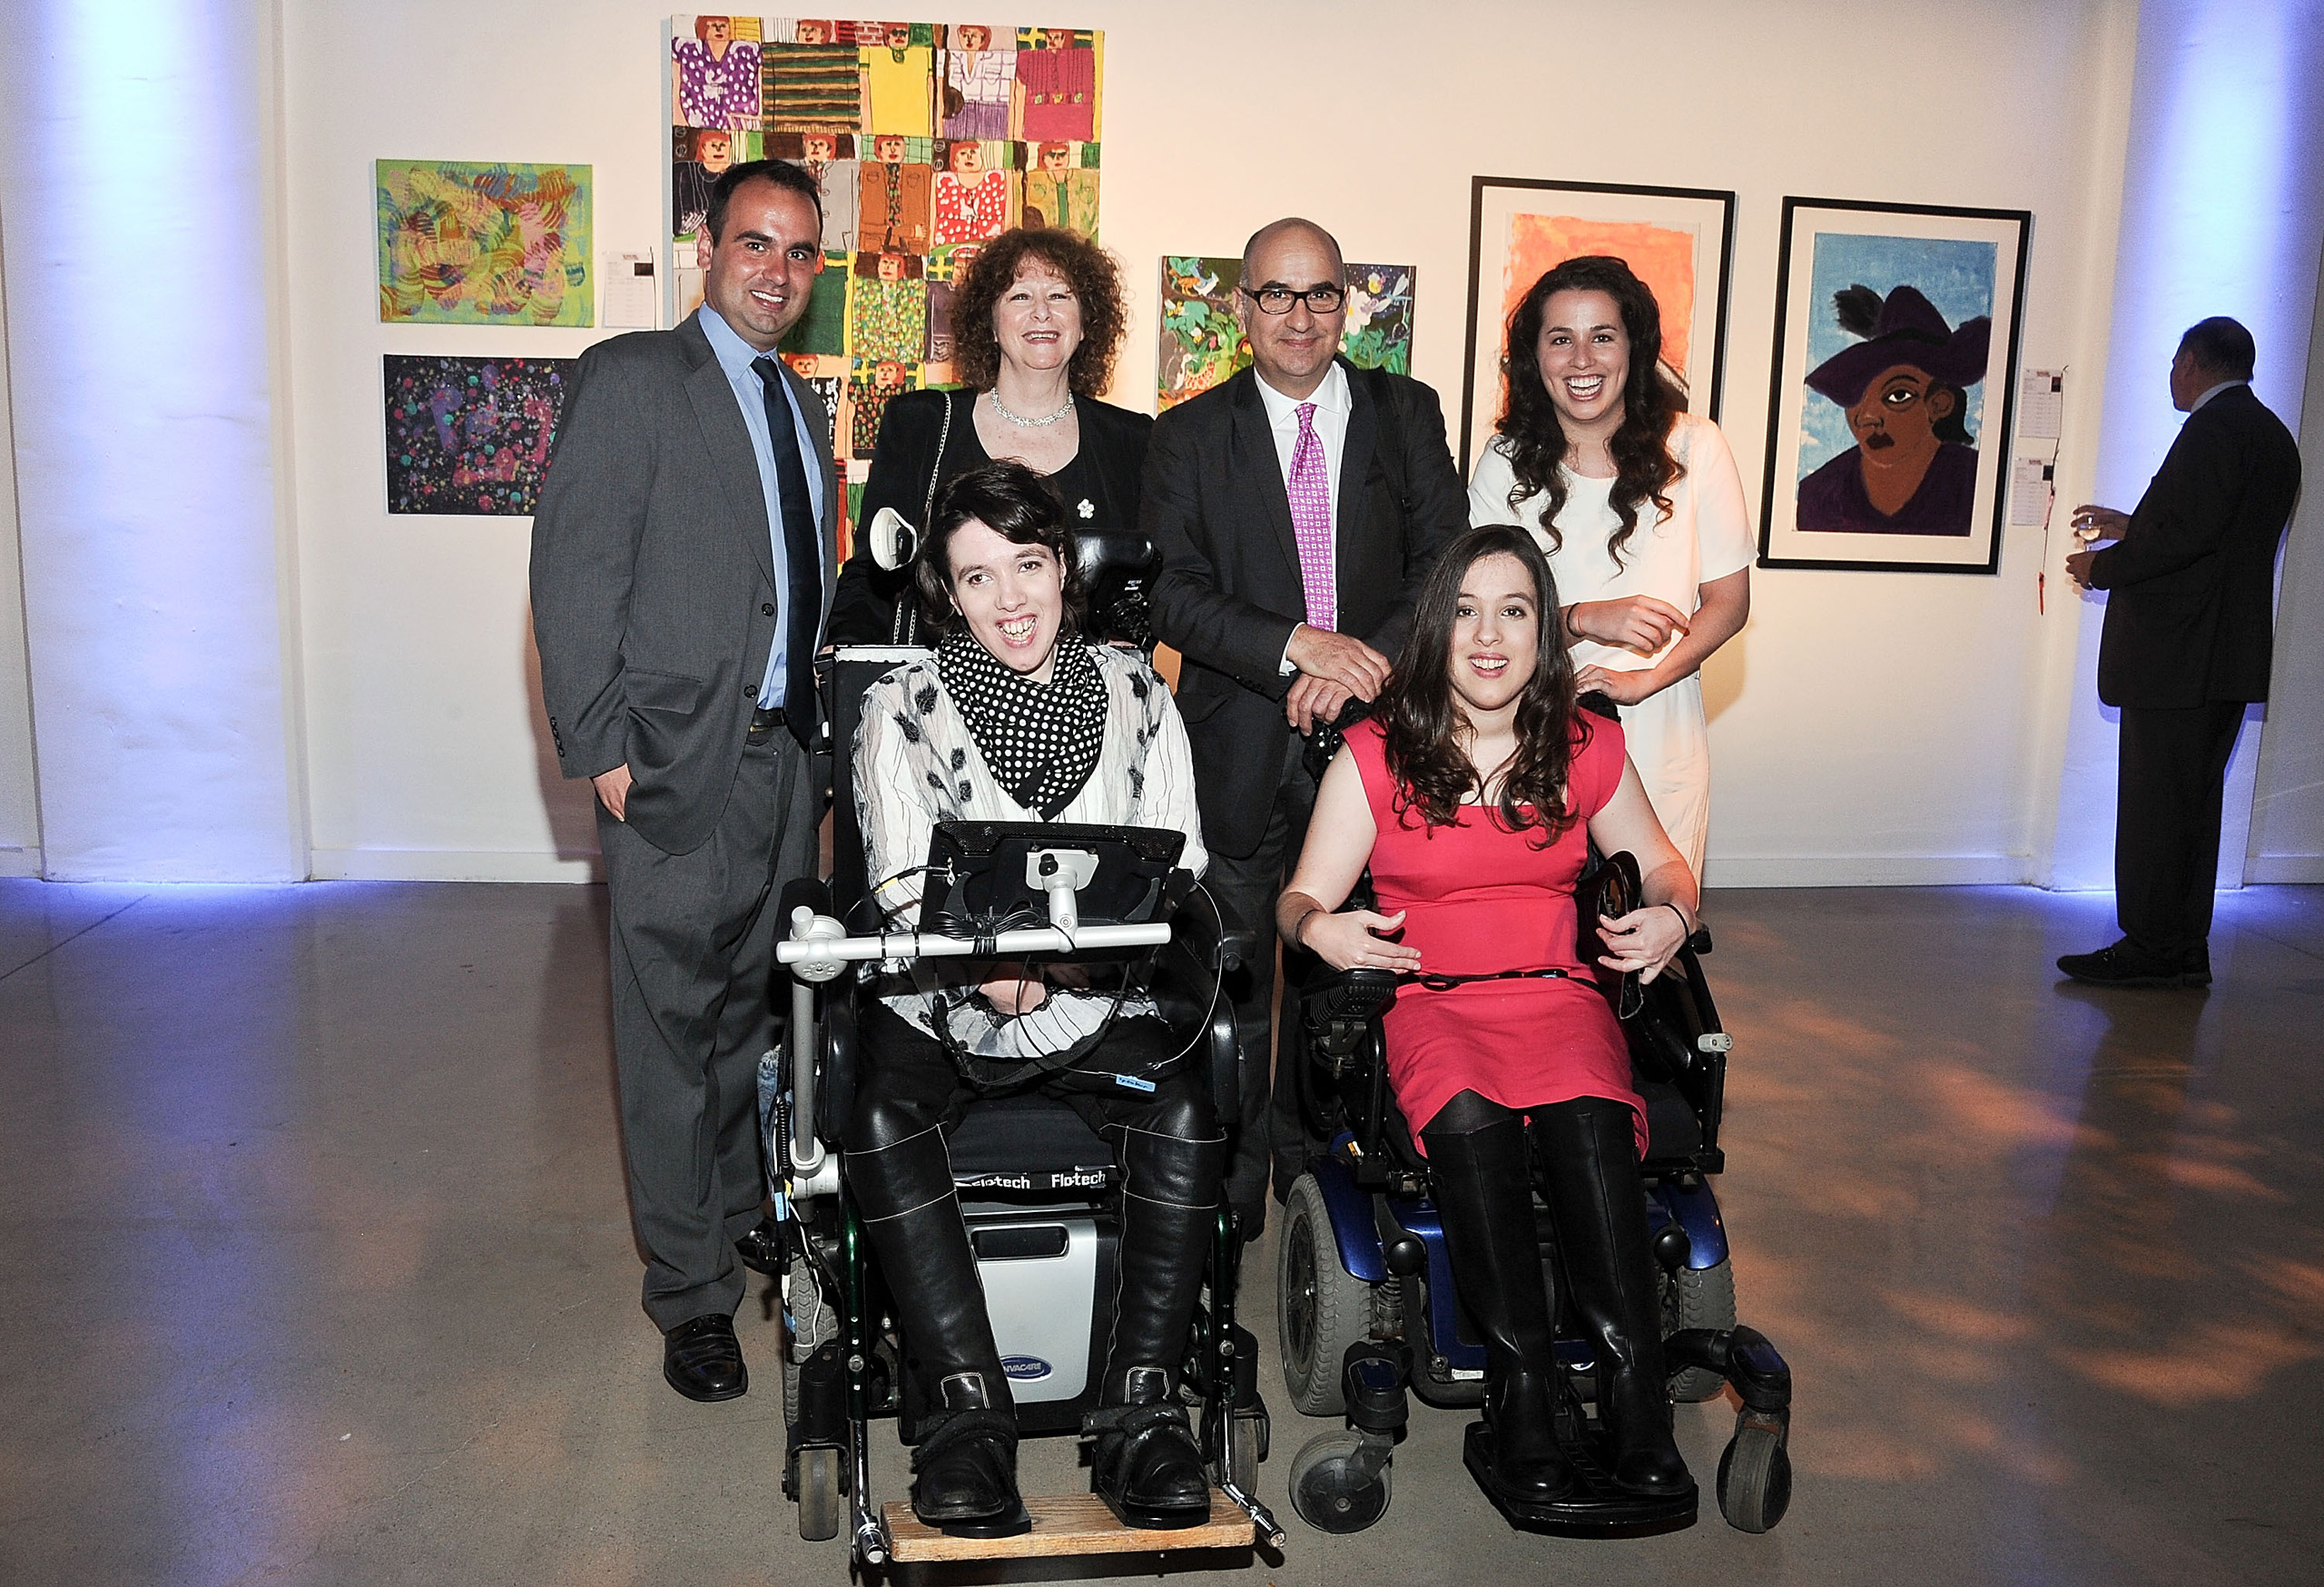 Oliver Somoza, Mary Somoza, Gerardo Somoza, Gabriella Somoza, Alba Somoza and Anastasia Somoza attend the The Shield Institute and Pure Vision Arts Celebration at Metropolitan West in New York City